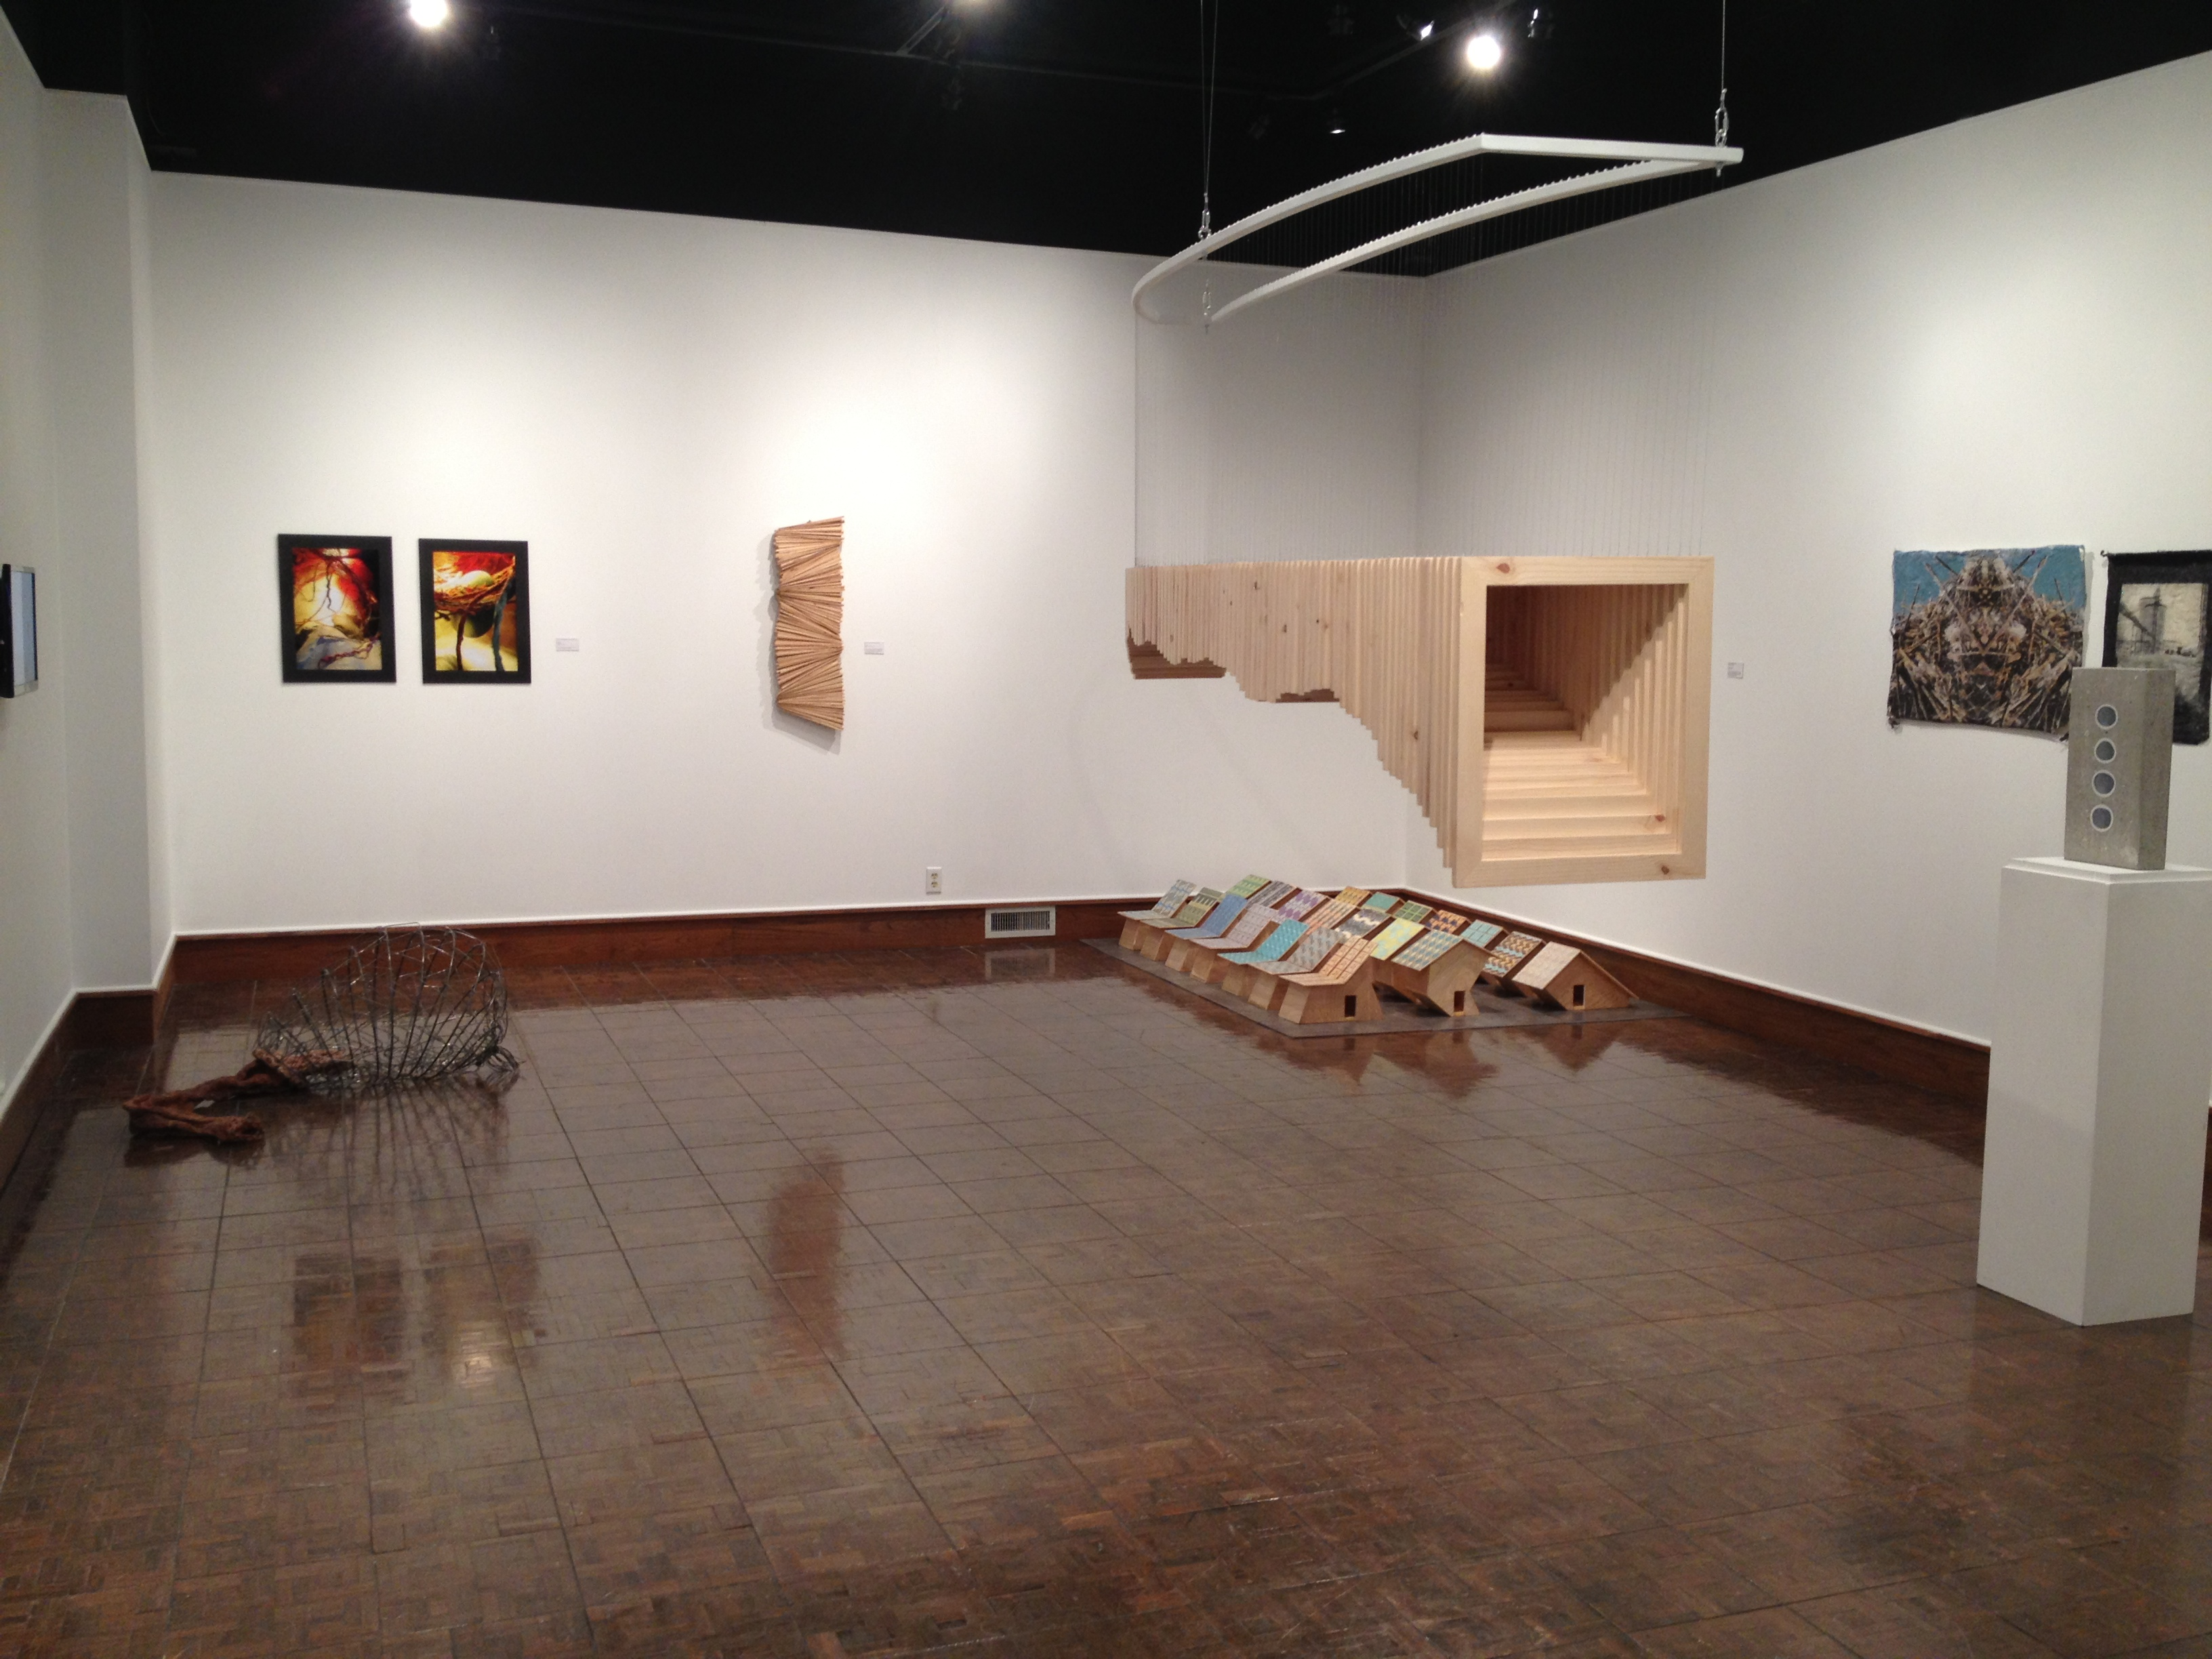 Clayton Staples Gallery